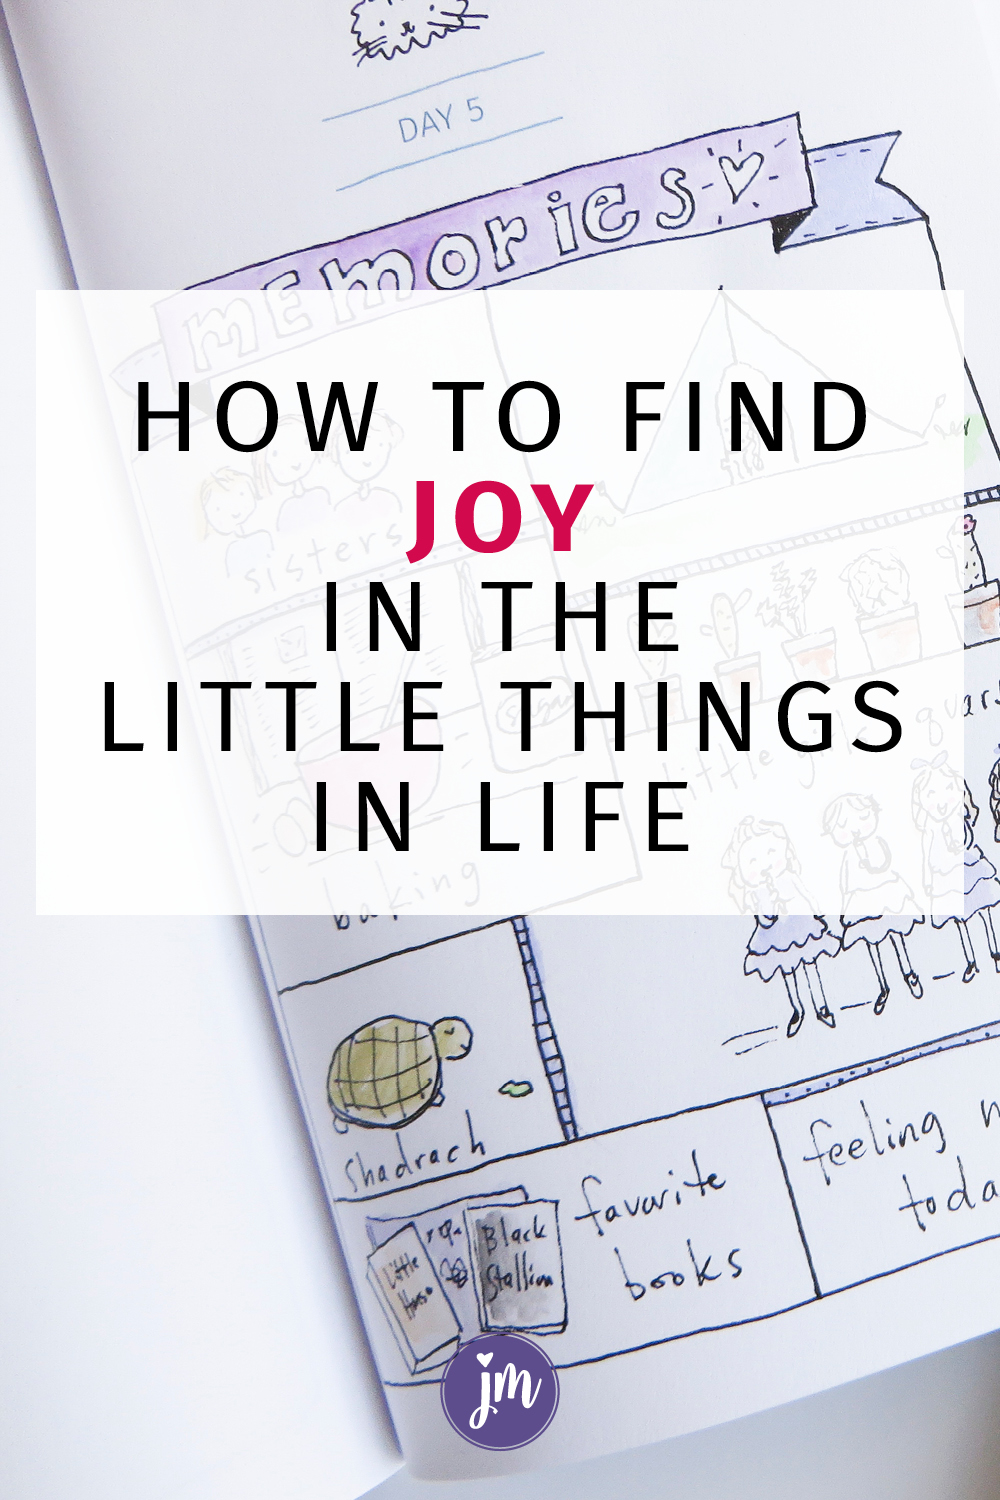 Sometimes finding joy in the little things in life is the most difficult. But with a bit of practice, you can learn to see your world differently and find that your life is truly a gift! Learn how by clicking through to read this article . . .